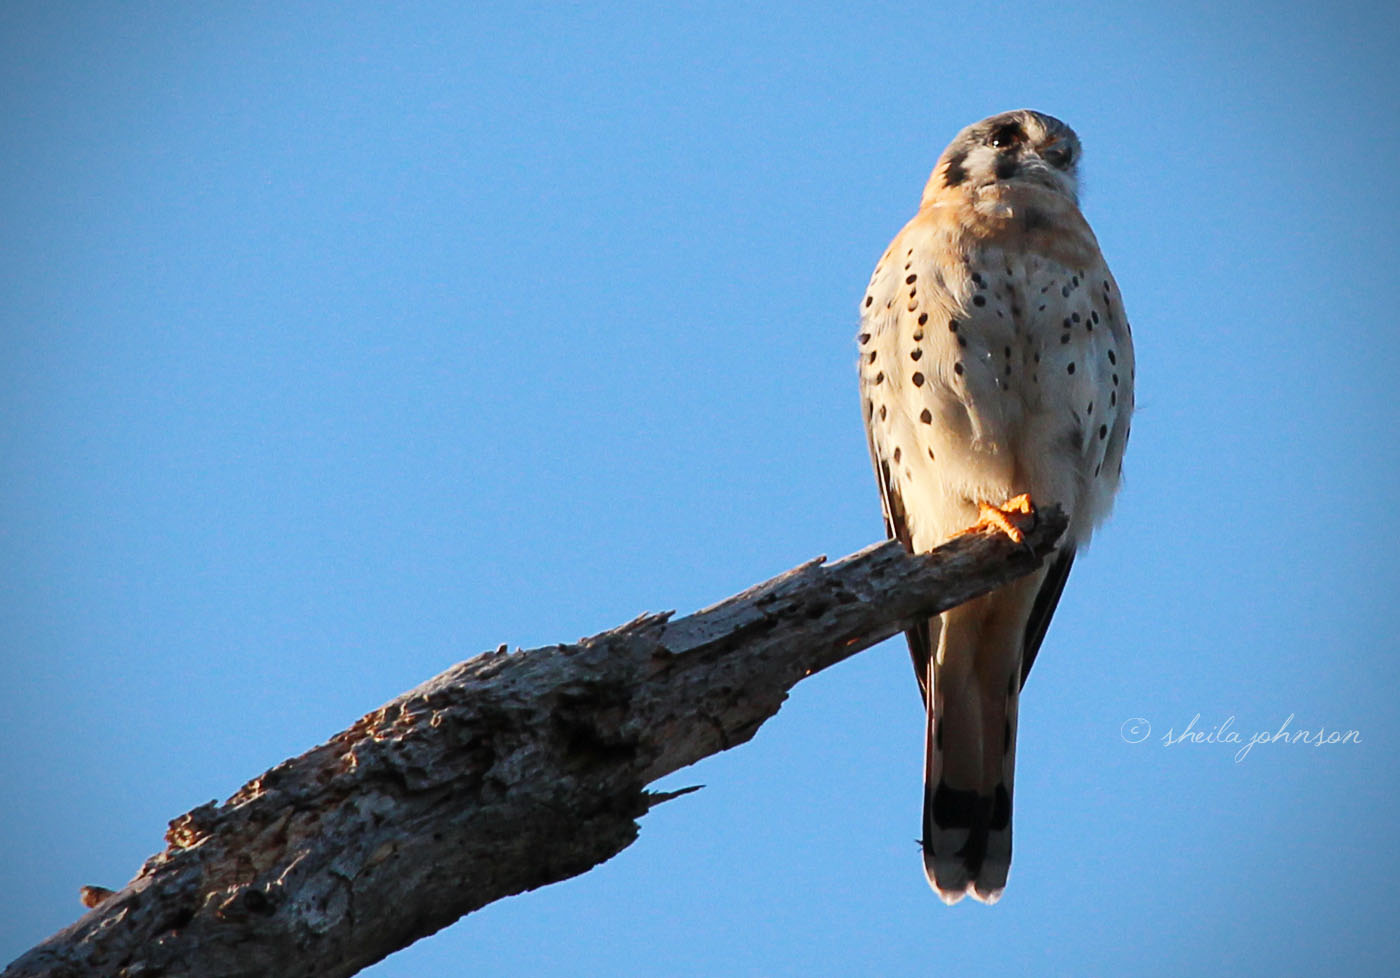 The American Kestrel Is The Smallest Falcon In North America. So Small, In Fact, That It's Easily Mistaken For Anything But A Falcon, When Spied High Atop A Naked Tree Branch Or Light Pole.